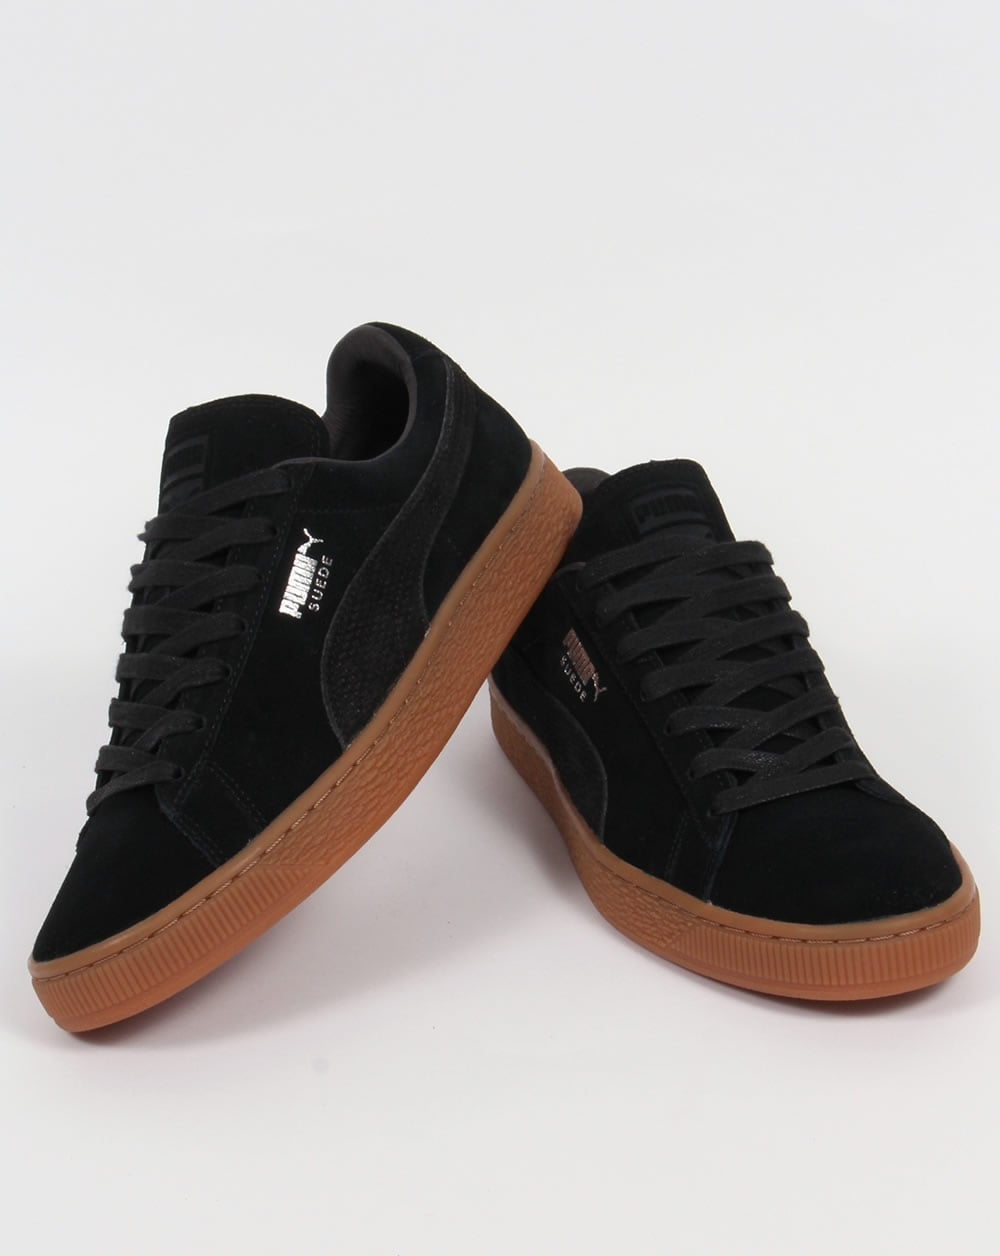 Puma Suede Citi Trainers Black,shoes,sneakers,classic,mens